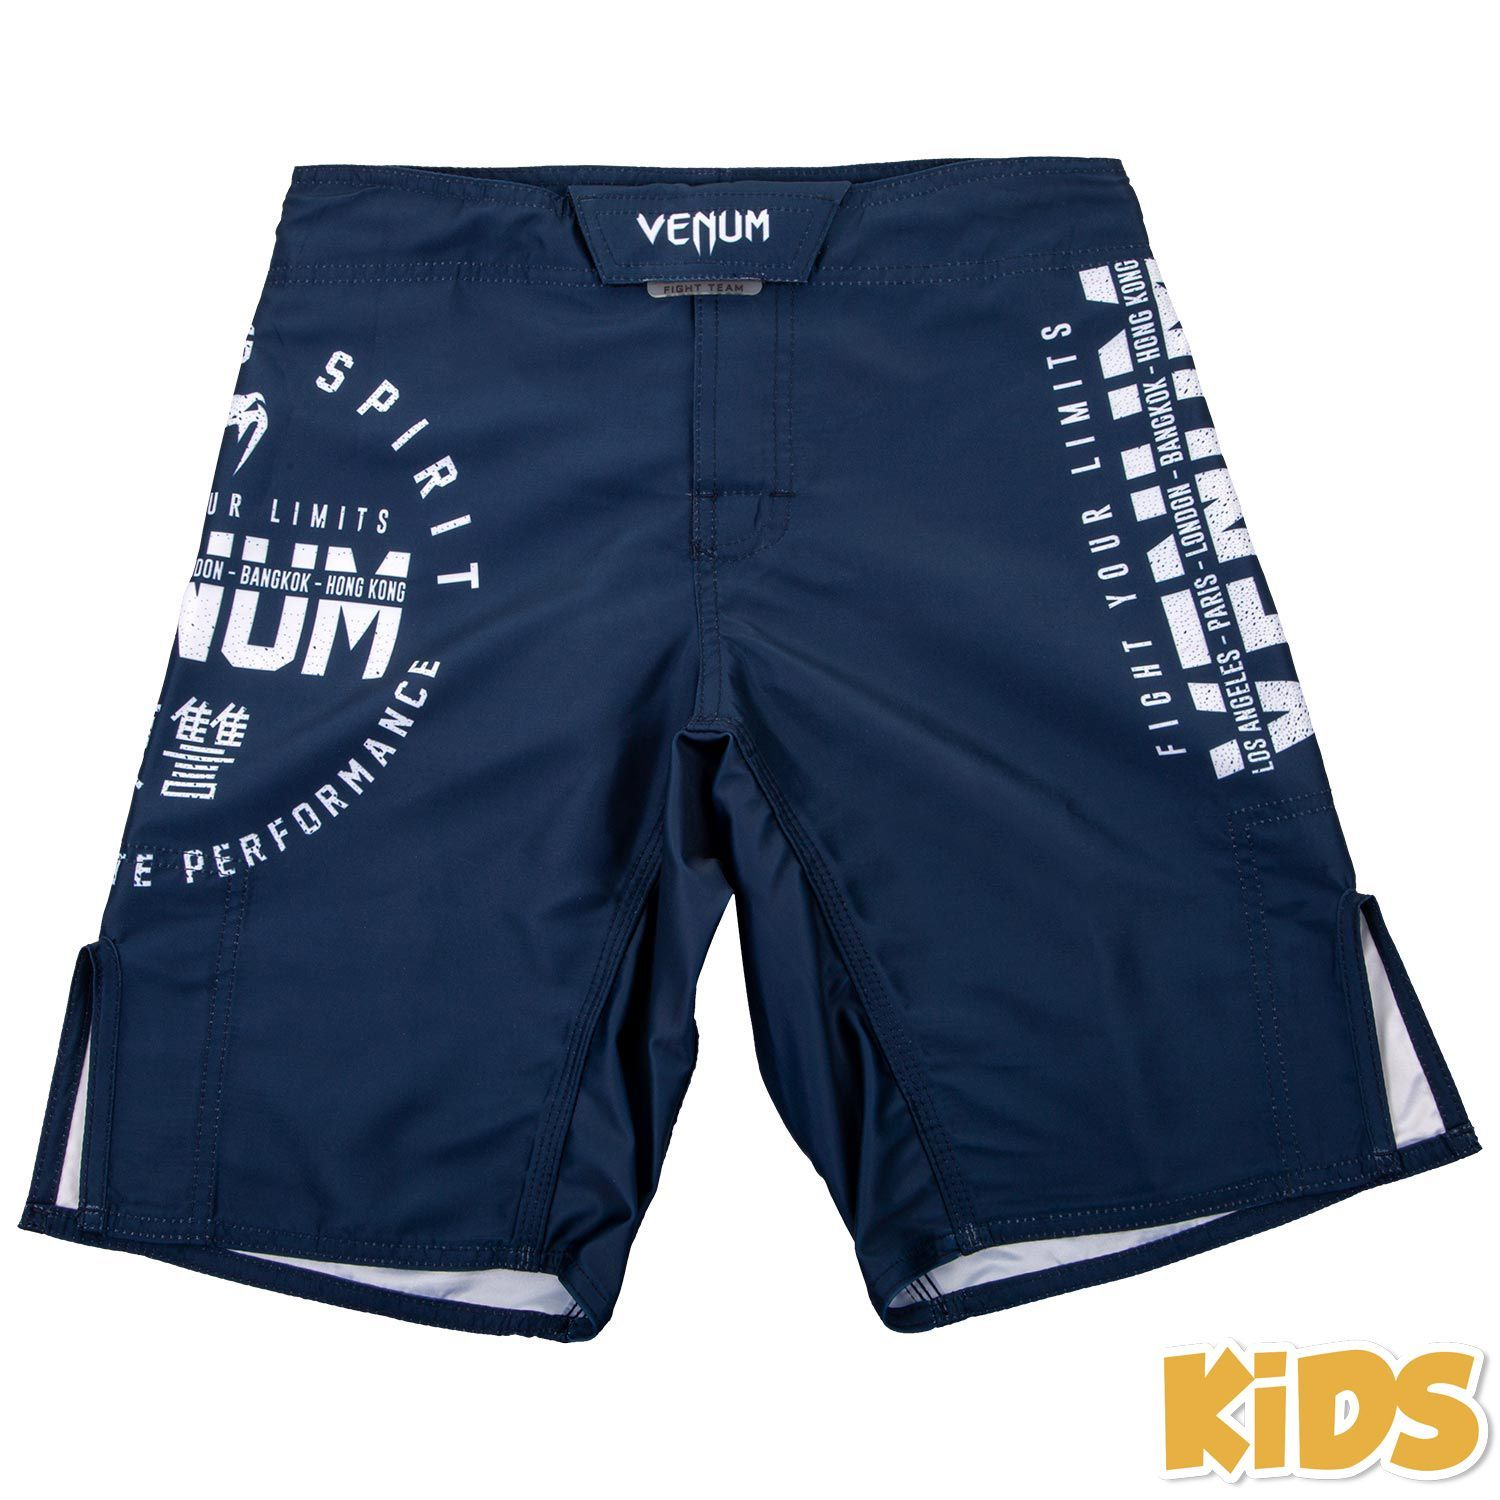 Venum Kids Signature Shorts (Navy Blue)